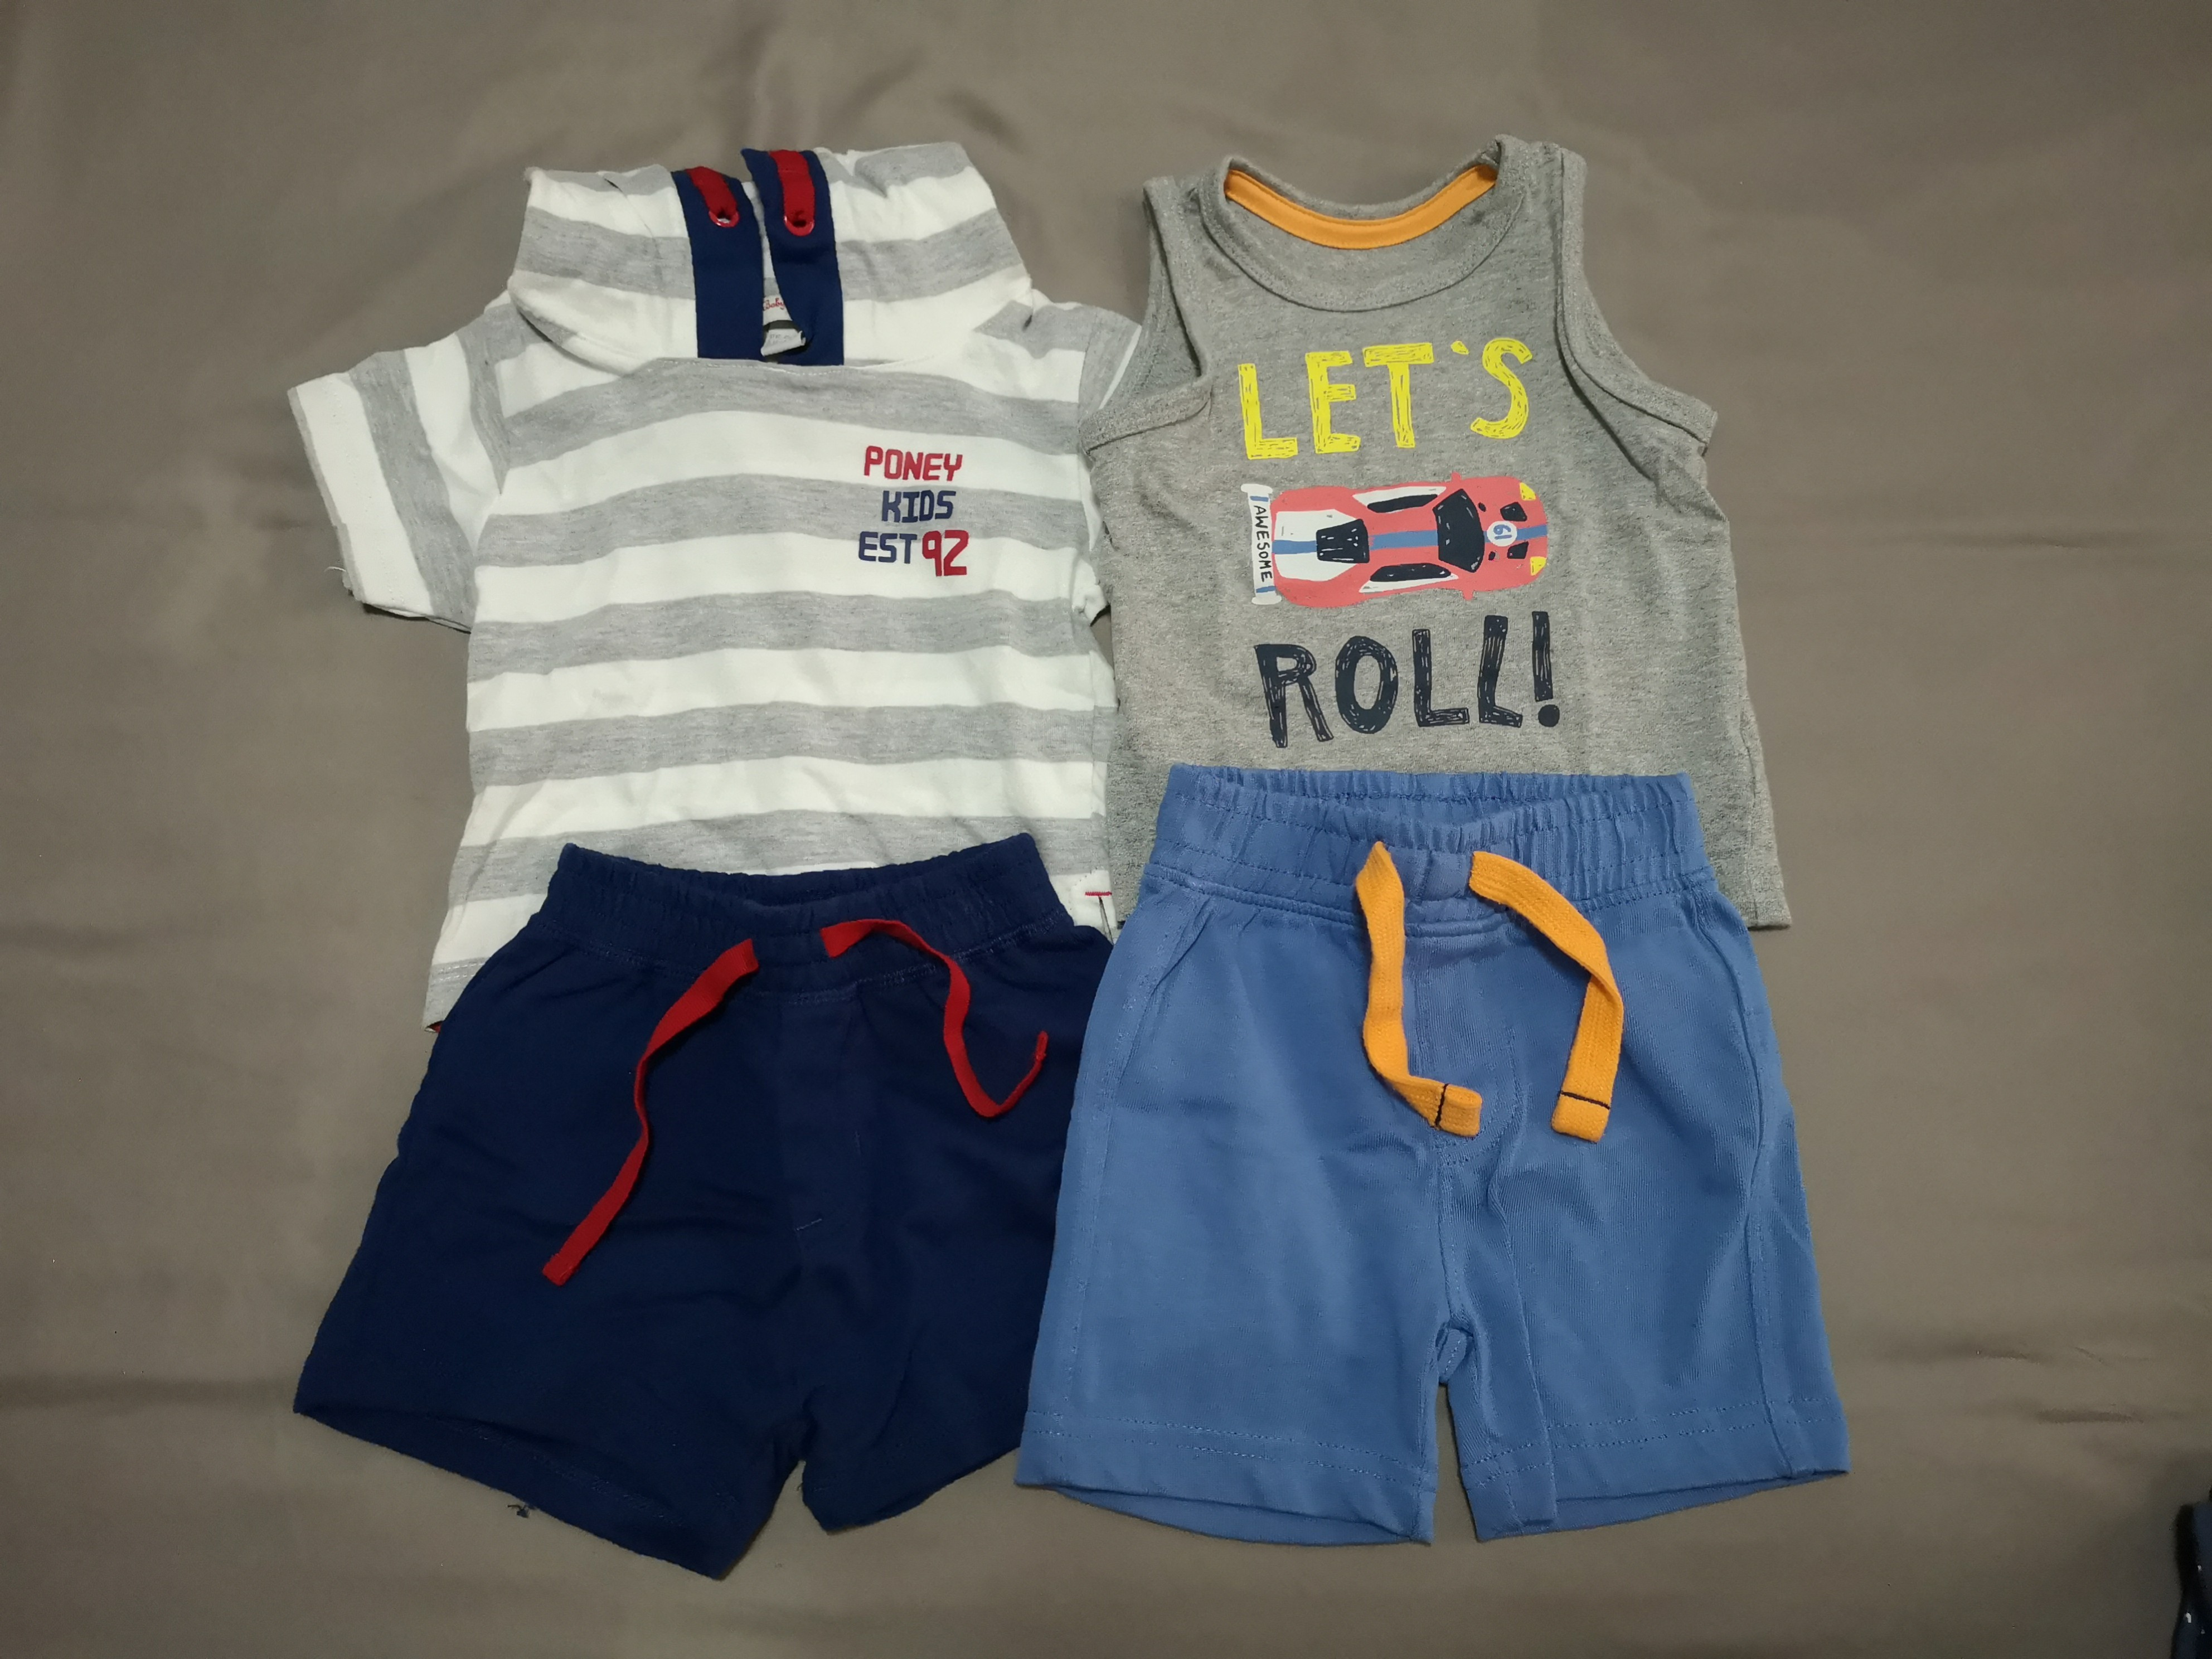 51f5f6f3 Poney Baby, Mothercare] Bundle of Baby Clothes, Babies & Kids ...